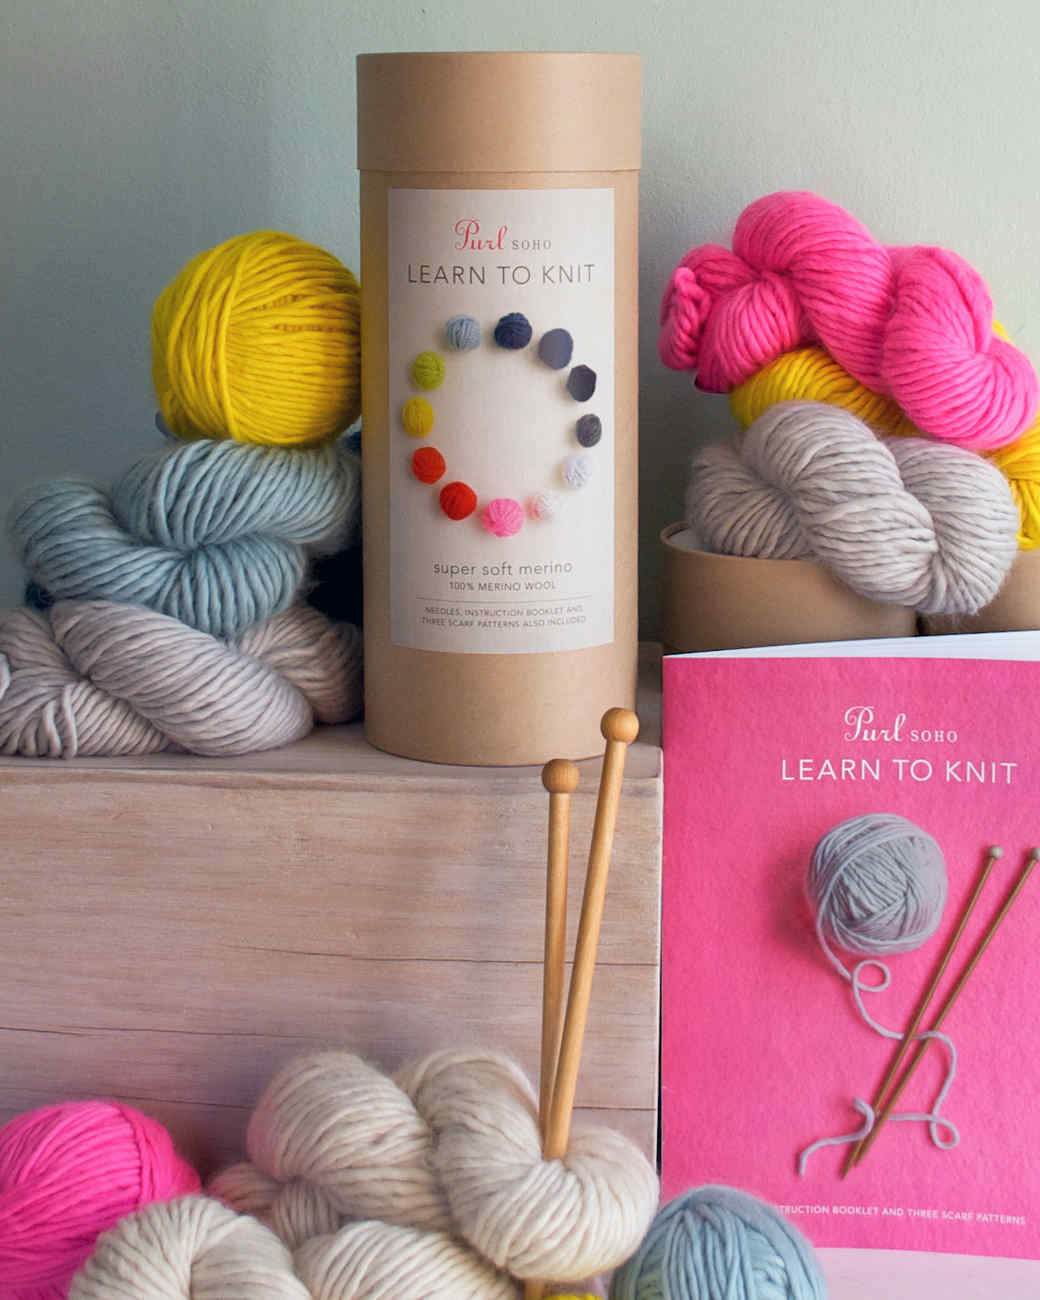 purl-soho-learn-to-knit-1014.jpg